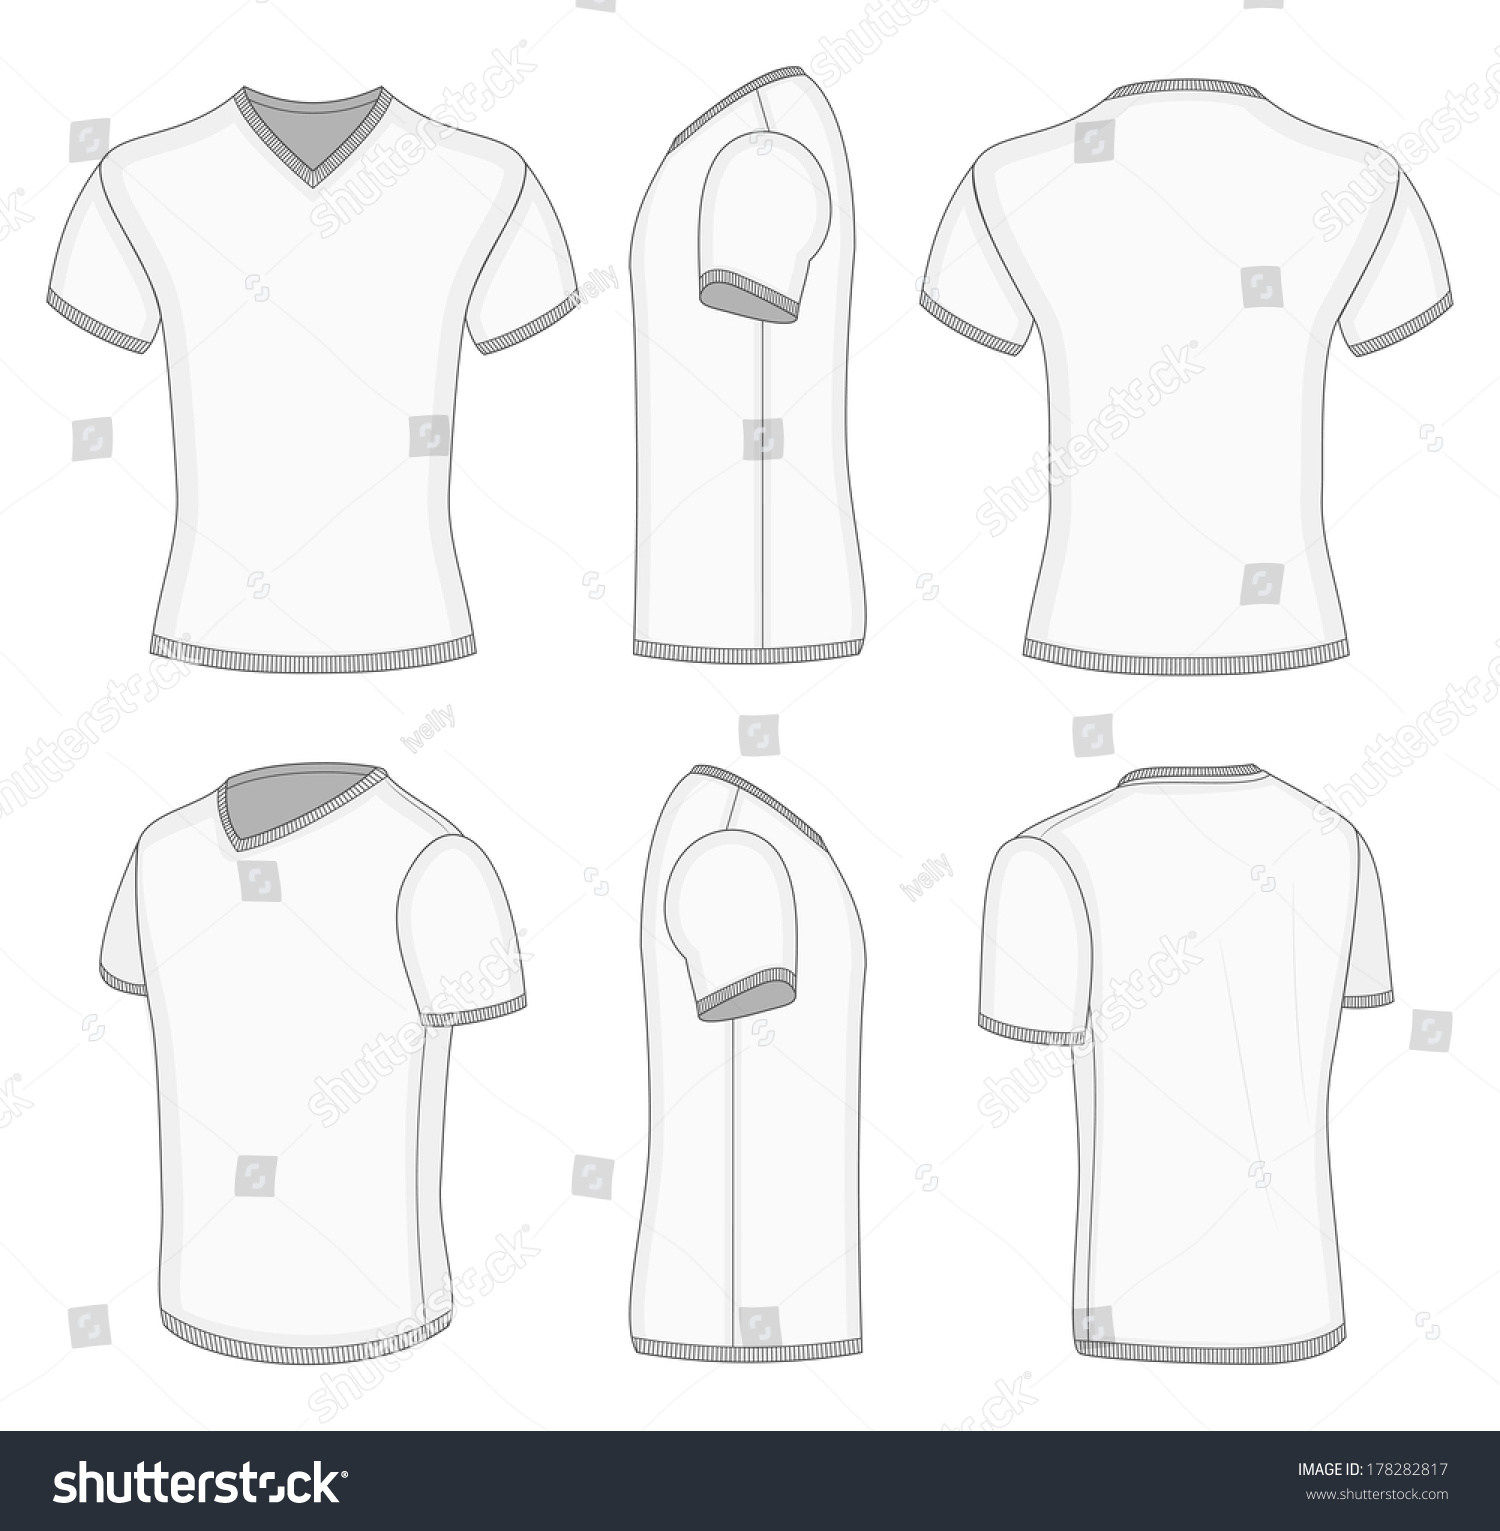 Erfreut Vektor T Shirt Vorlagen Ideen - Entry Level Resume Vorlagen ...